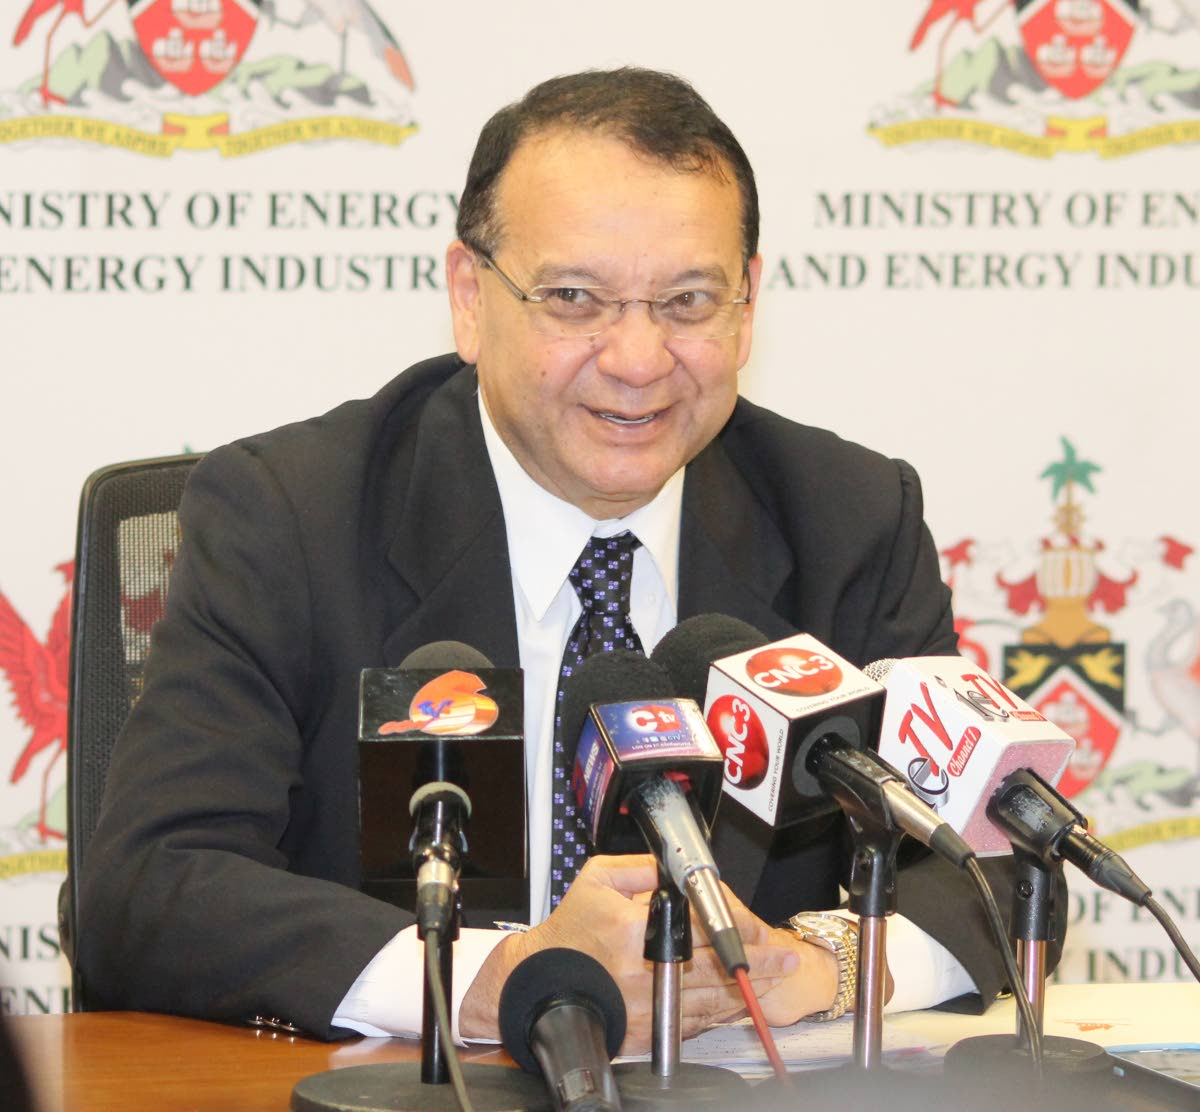 Franklin Khan, Minister of Energy and Energy Industries,